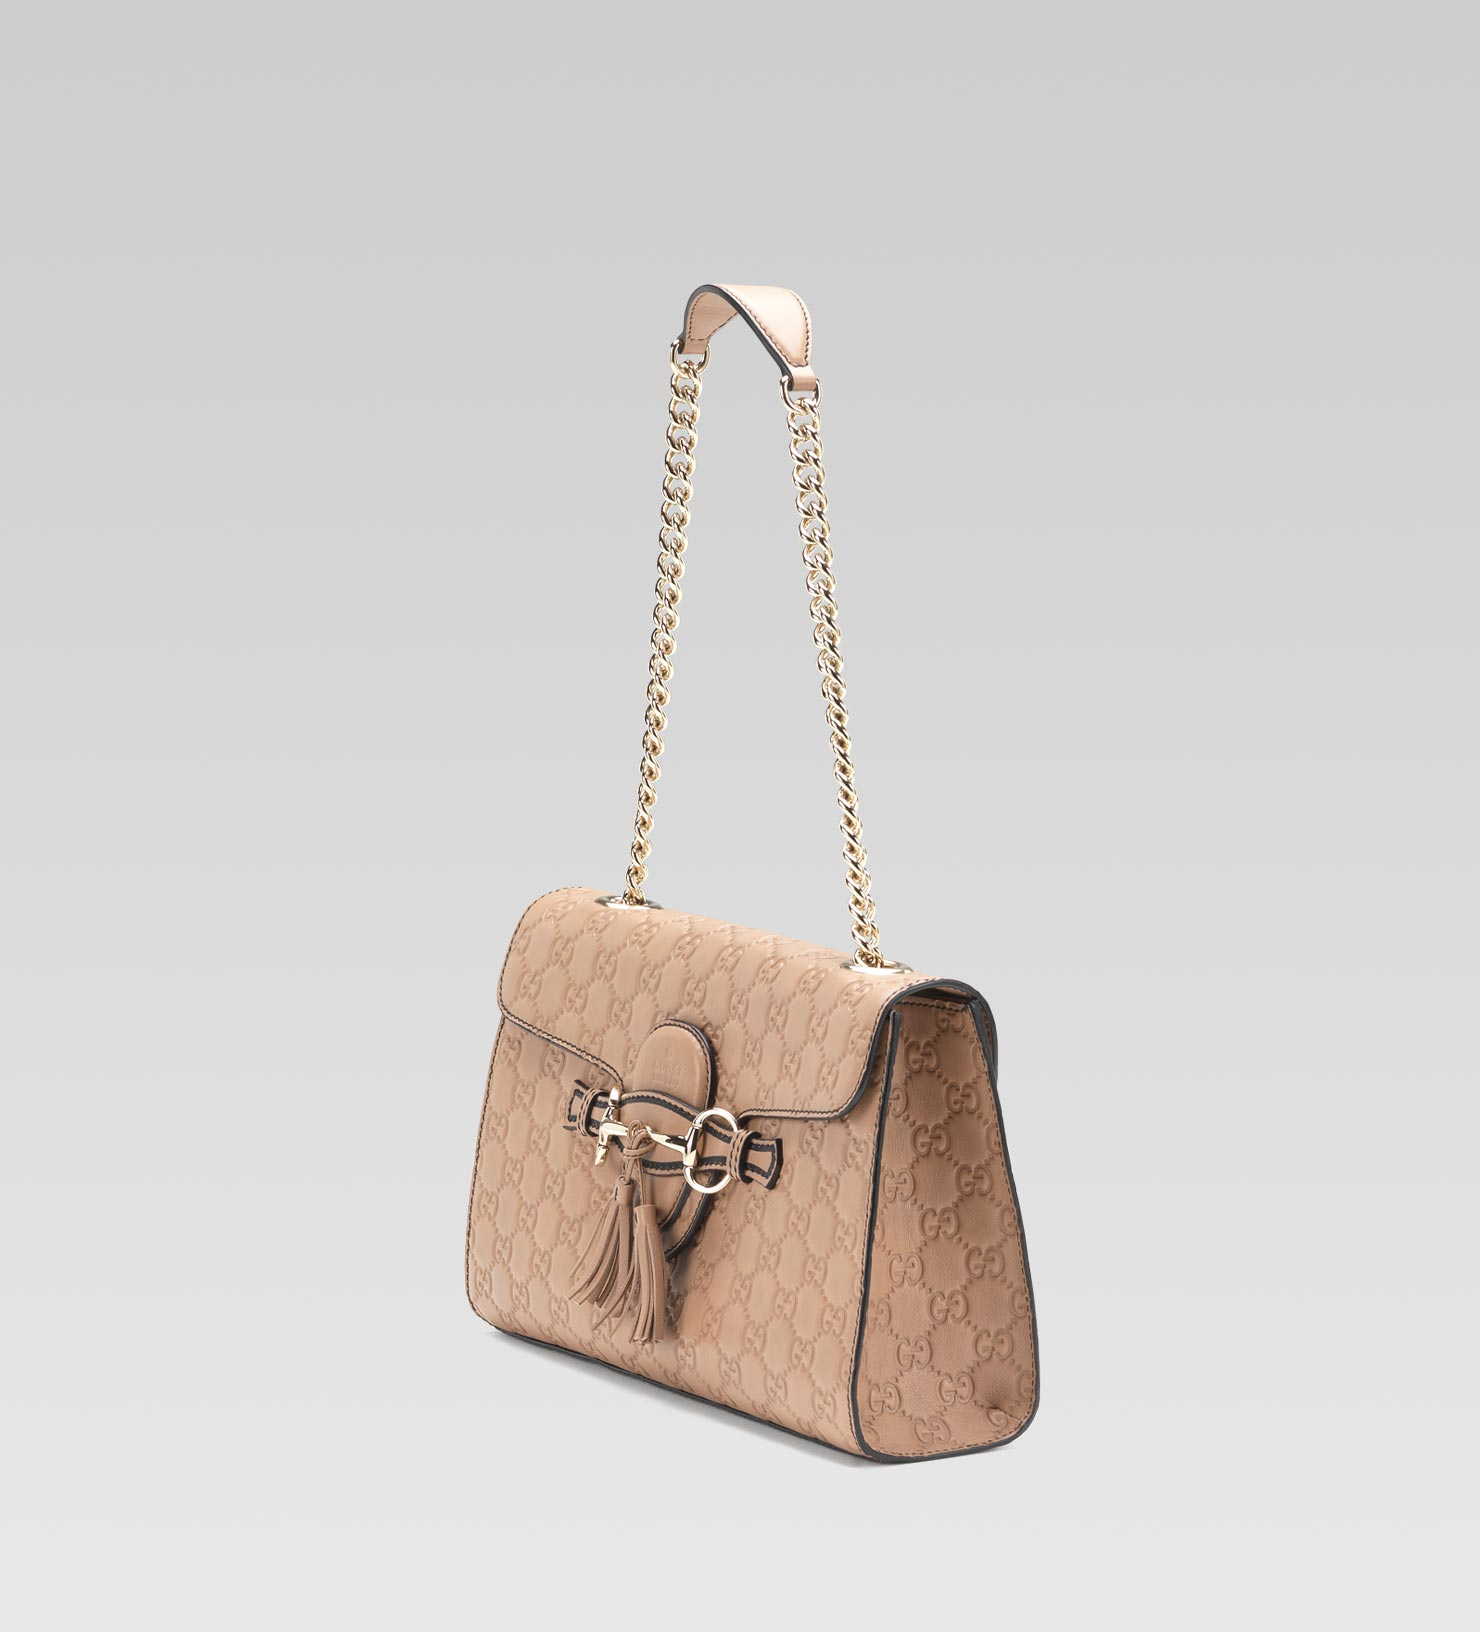 2dc5d3dded2a Gucci Emily Guccissima Leather Chain Shoulder Bag in Brown - Lyst